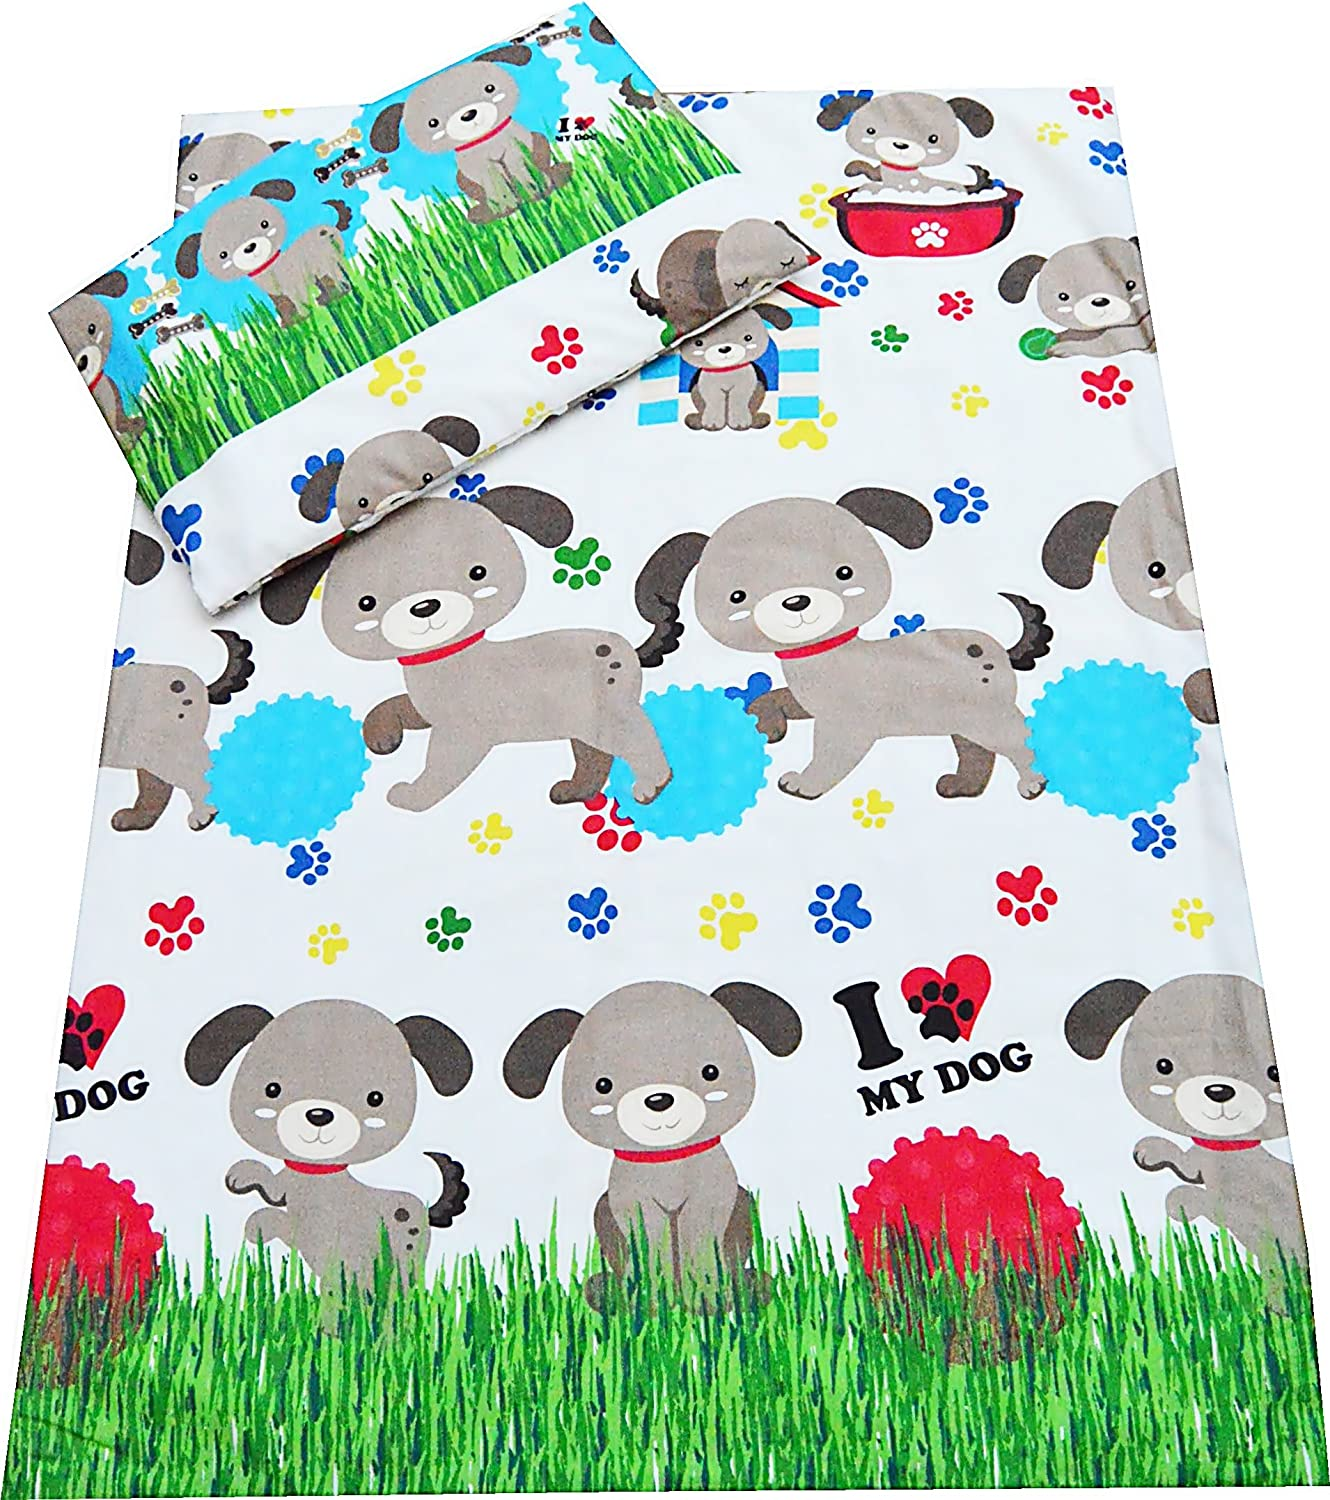 90x120 cm Babies-Island A/2 Piece Bedding Set Pillowcase+Duvet Cover For Baby Toddler Junior To Fit Cot//Cot Bed DOGS